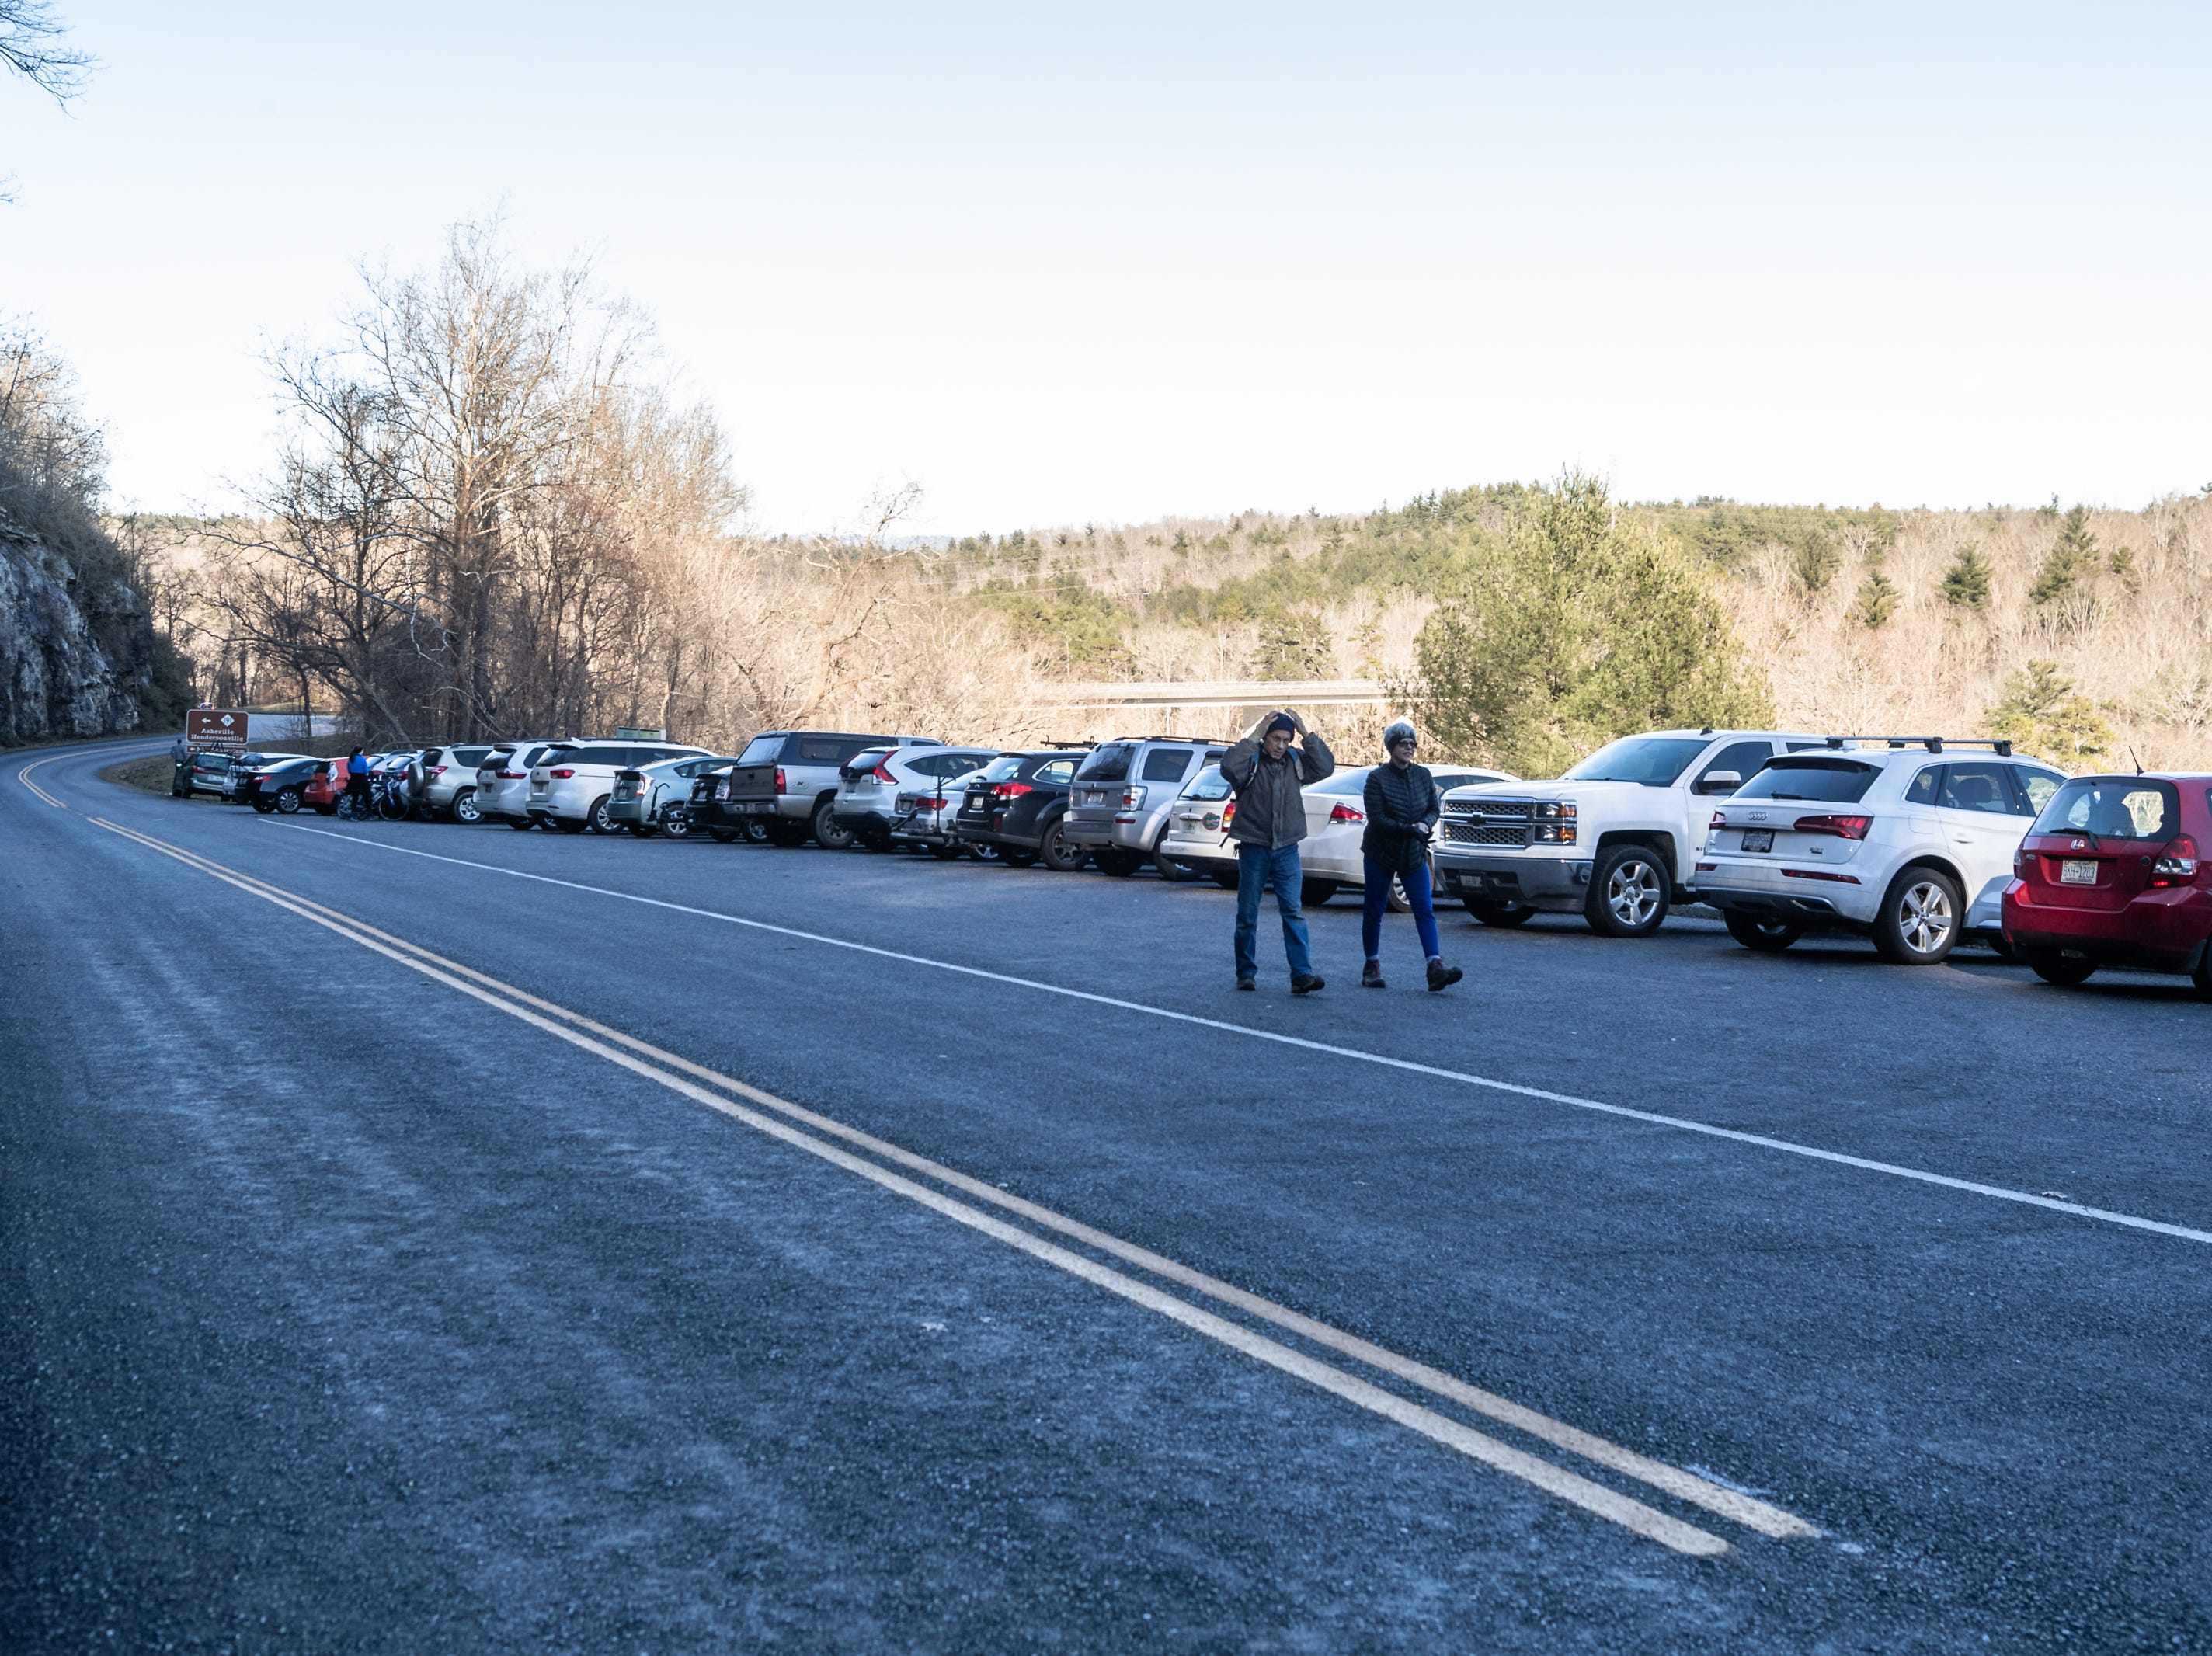 Vehicles fill a parking area at the beginning of the southern section of the Blue Ridge Parkway just south of the North Carolina Arboretum Jan. 5, 2019. Much of the Parkway has been closed due to the government shut down.